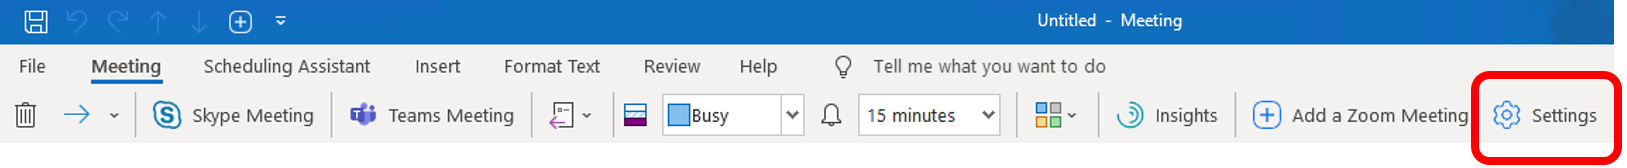 Scheduling Zoom Meetings on Behalf of Another User in Office 365 03